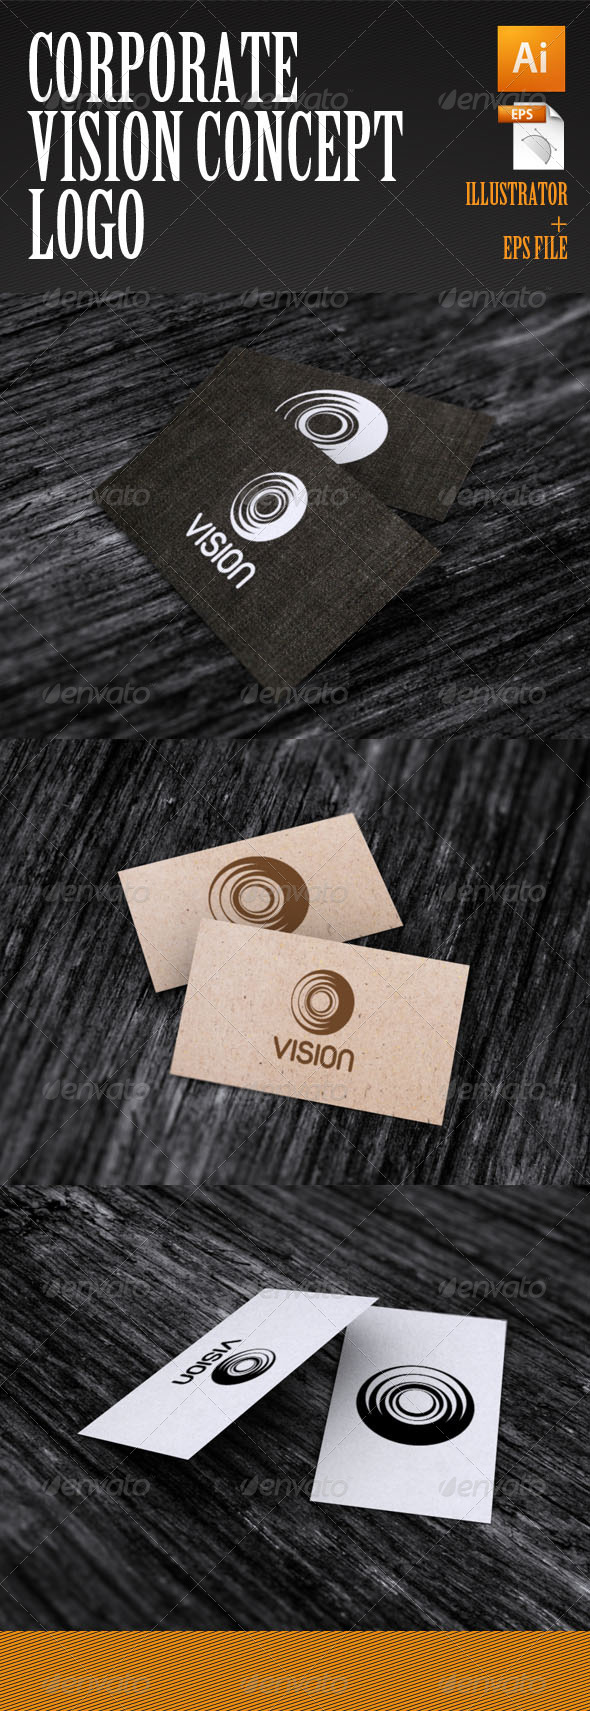 Corporate Vision Concept Logo - Abstract Logo Templates